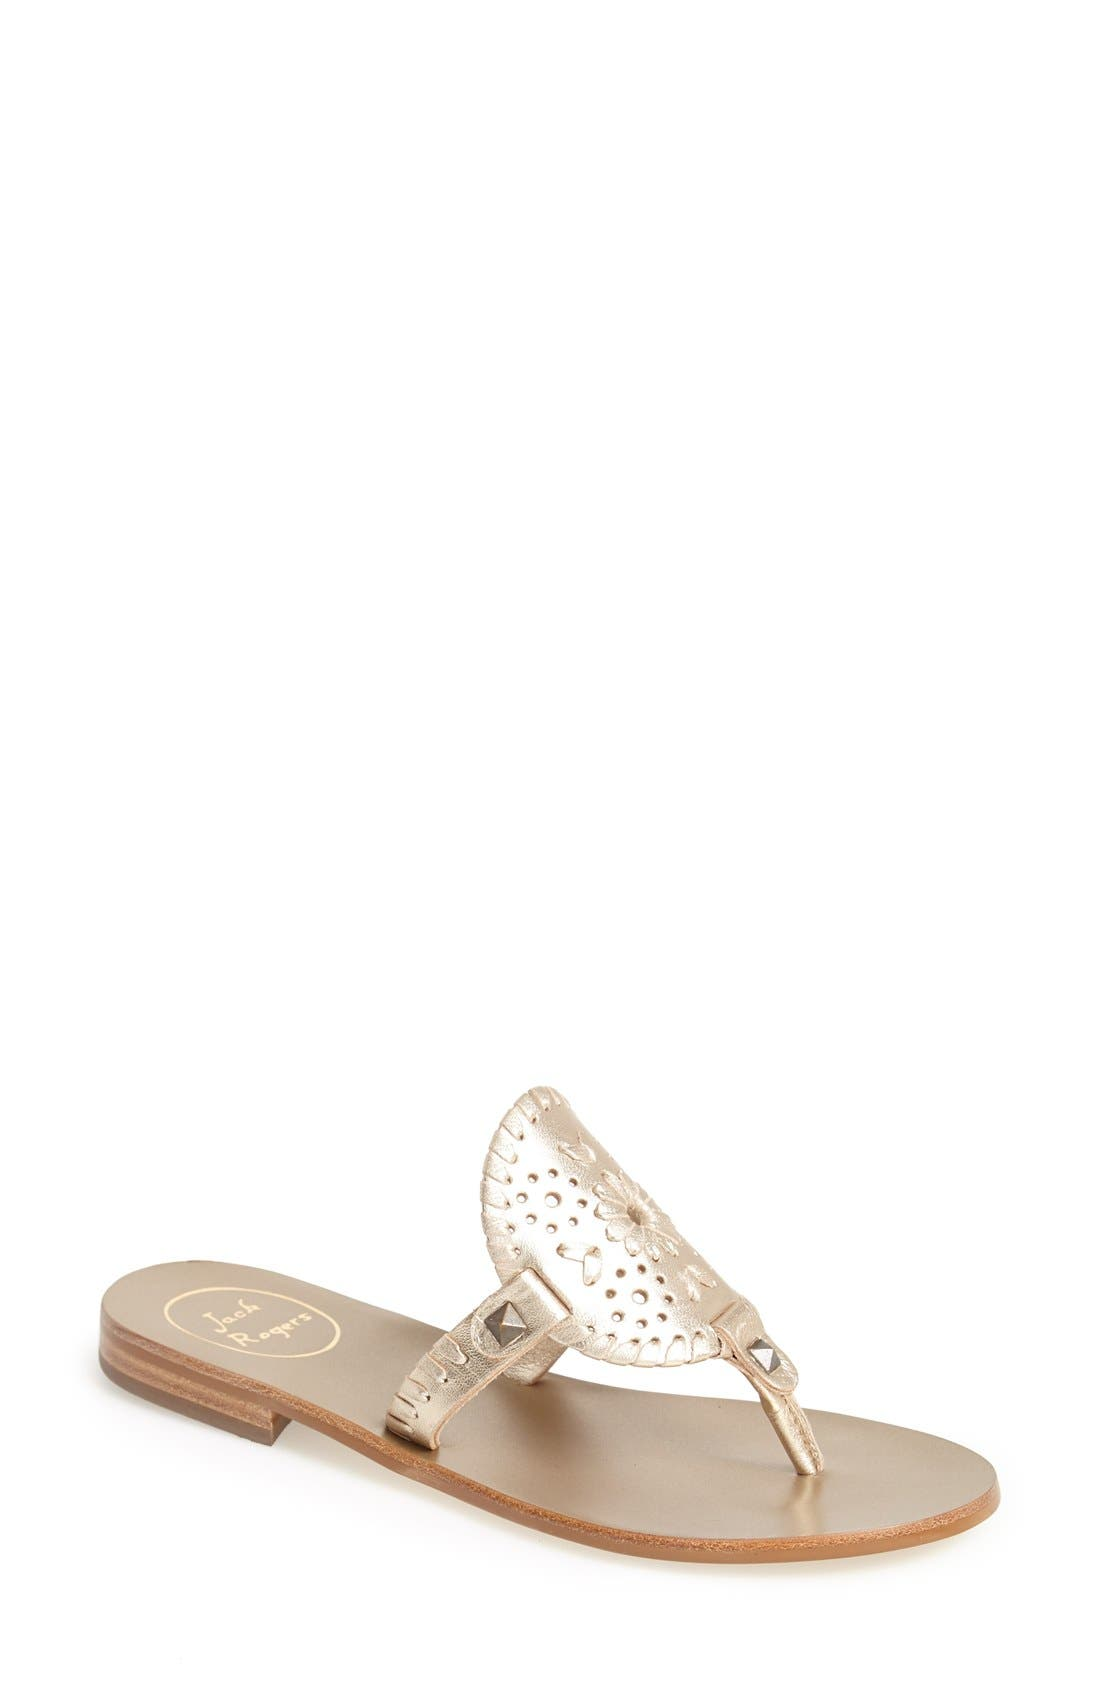 Alternate Image 1 Selected - Jack Rogers 'Georgica' Sandals (Women)